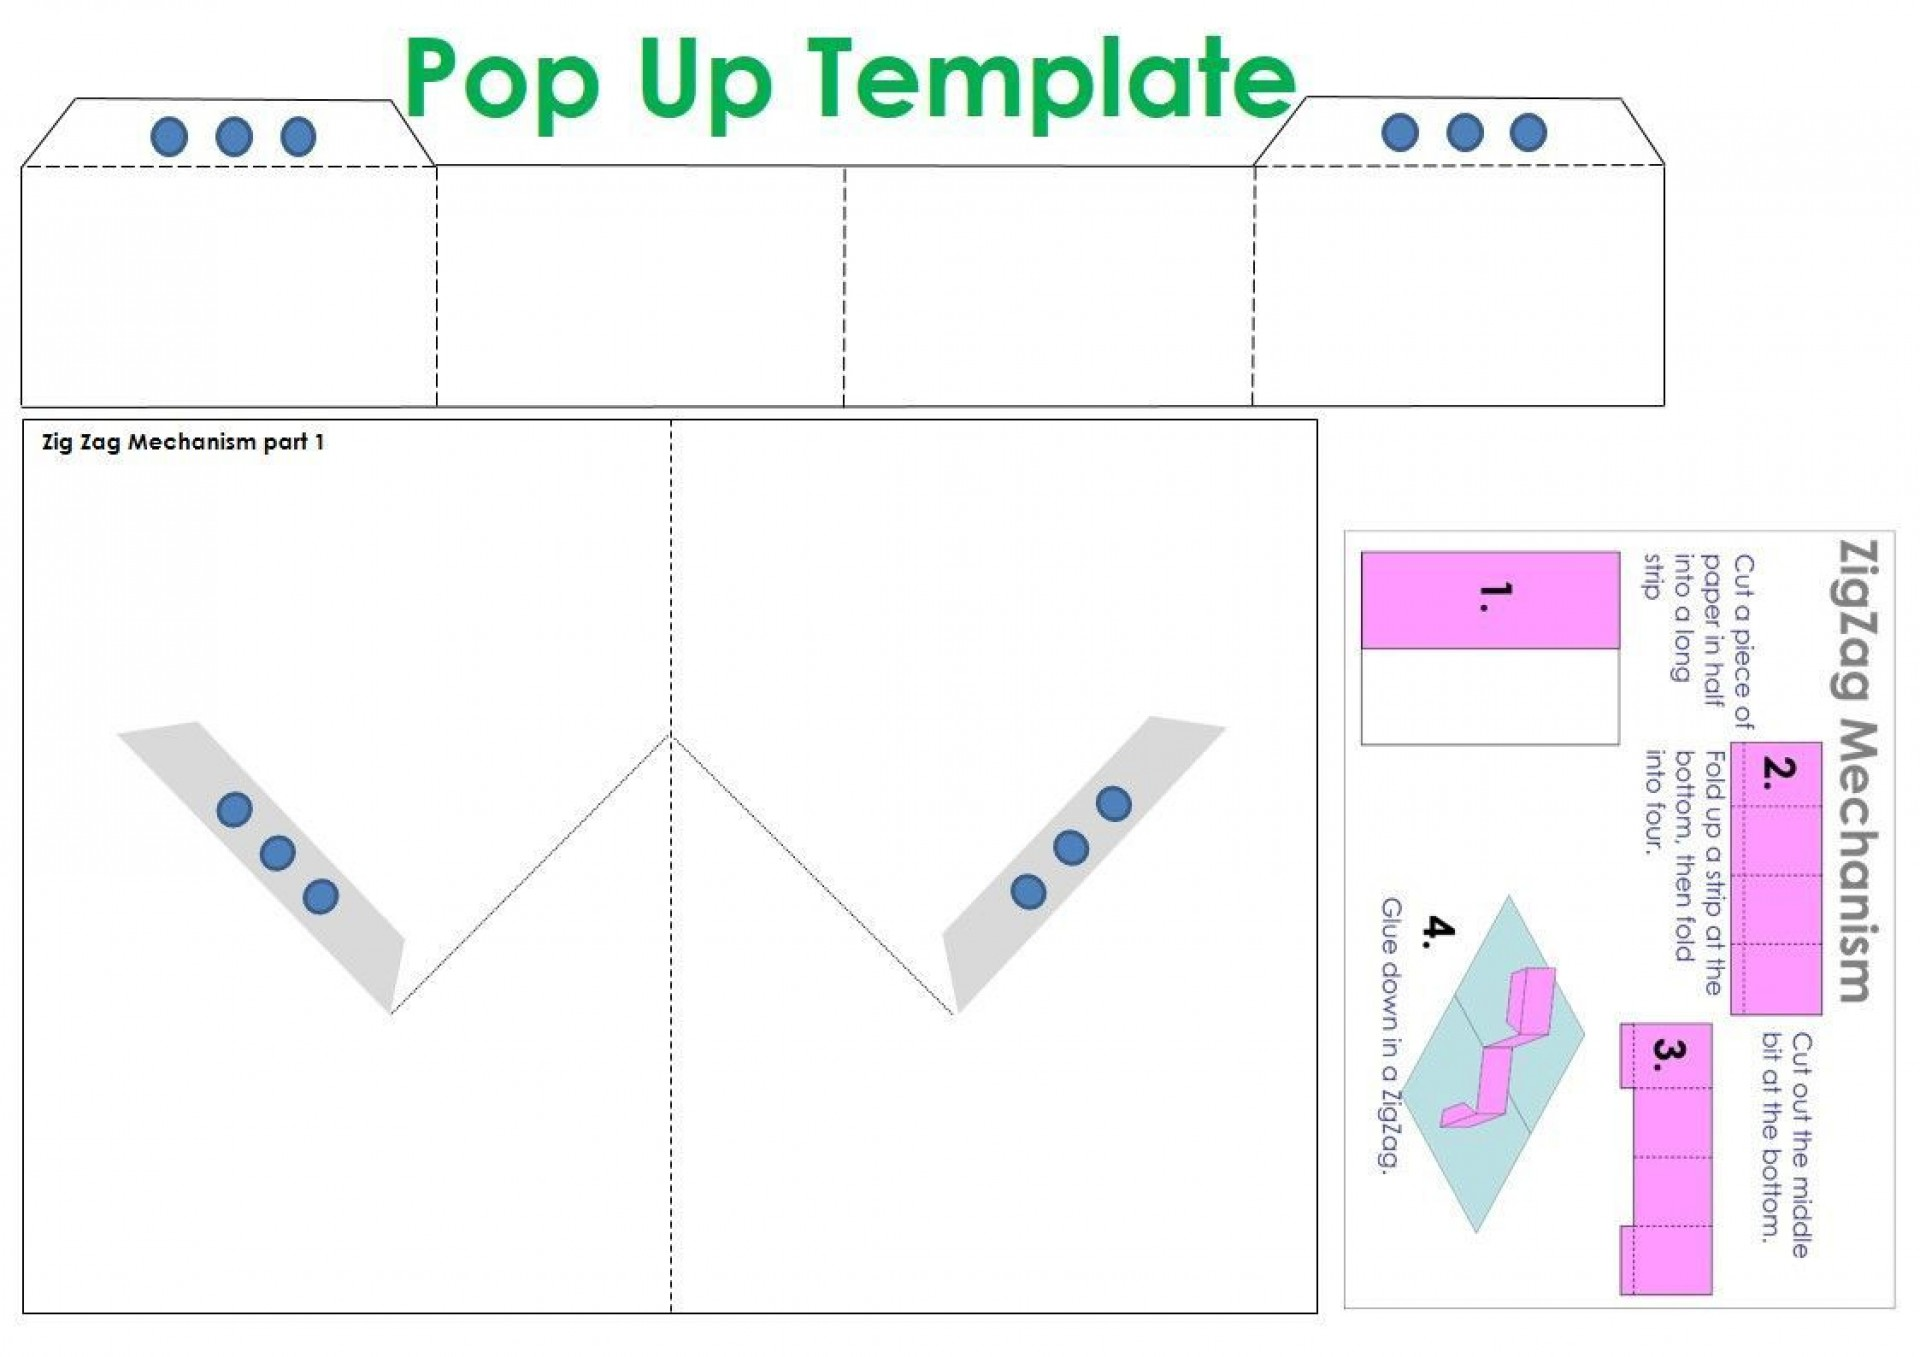 001 Remarkable Pop Up Book Template Picture  Diy Birthday After Effect Free Download1920